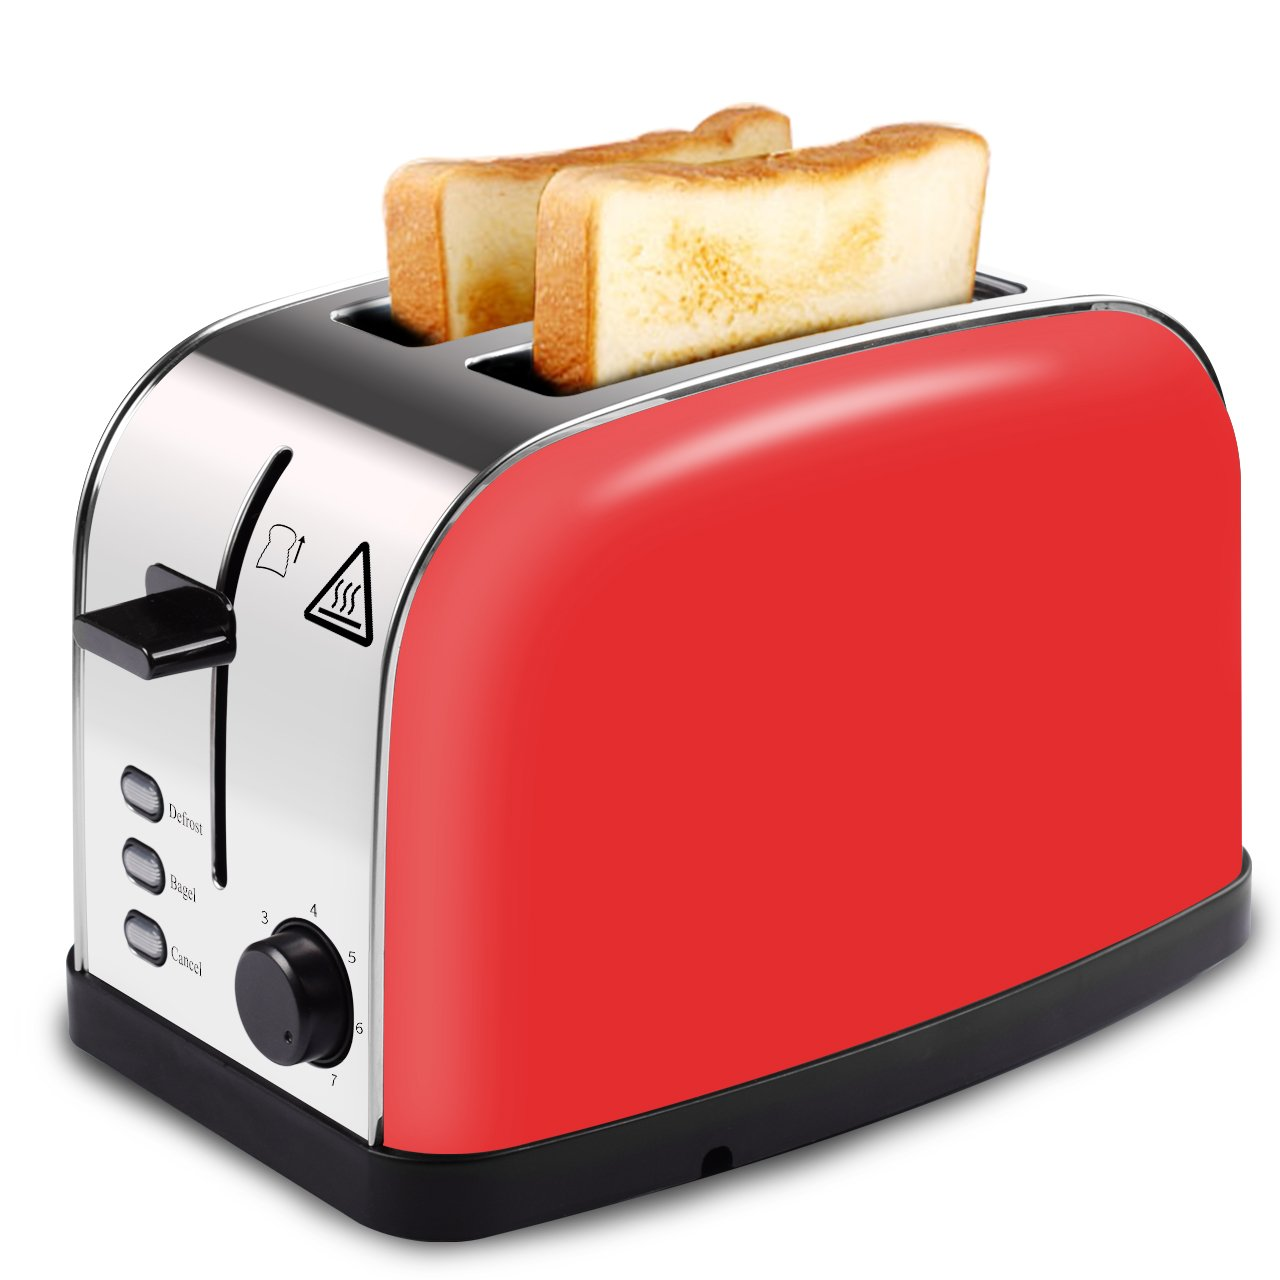 HOPPIC Toaster 2 Slice with Extra Wide Slot, Bagel, Defrost, Cancel Functions, 7-level Shade Control, Removable Crumb Tray, Brushed Stainless Steel Toaster Red